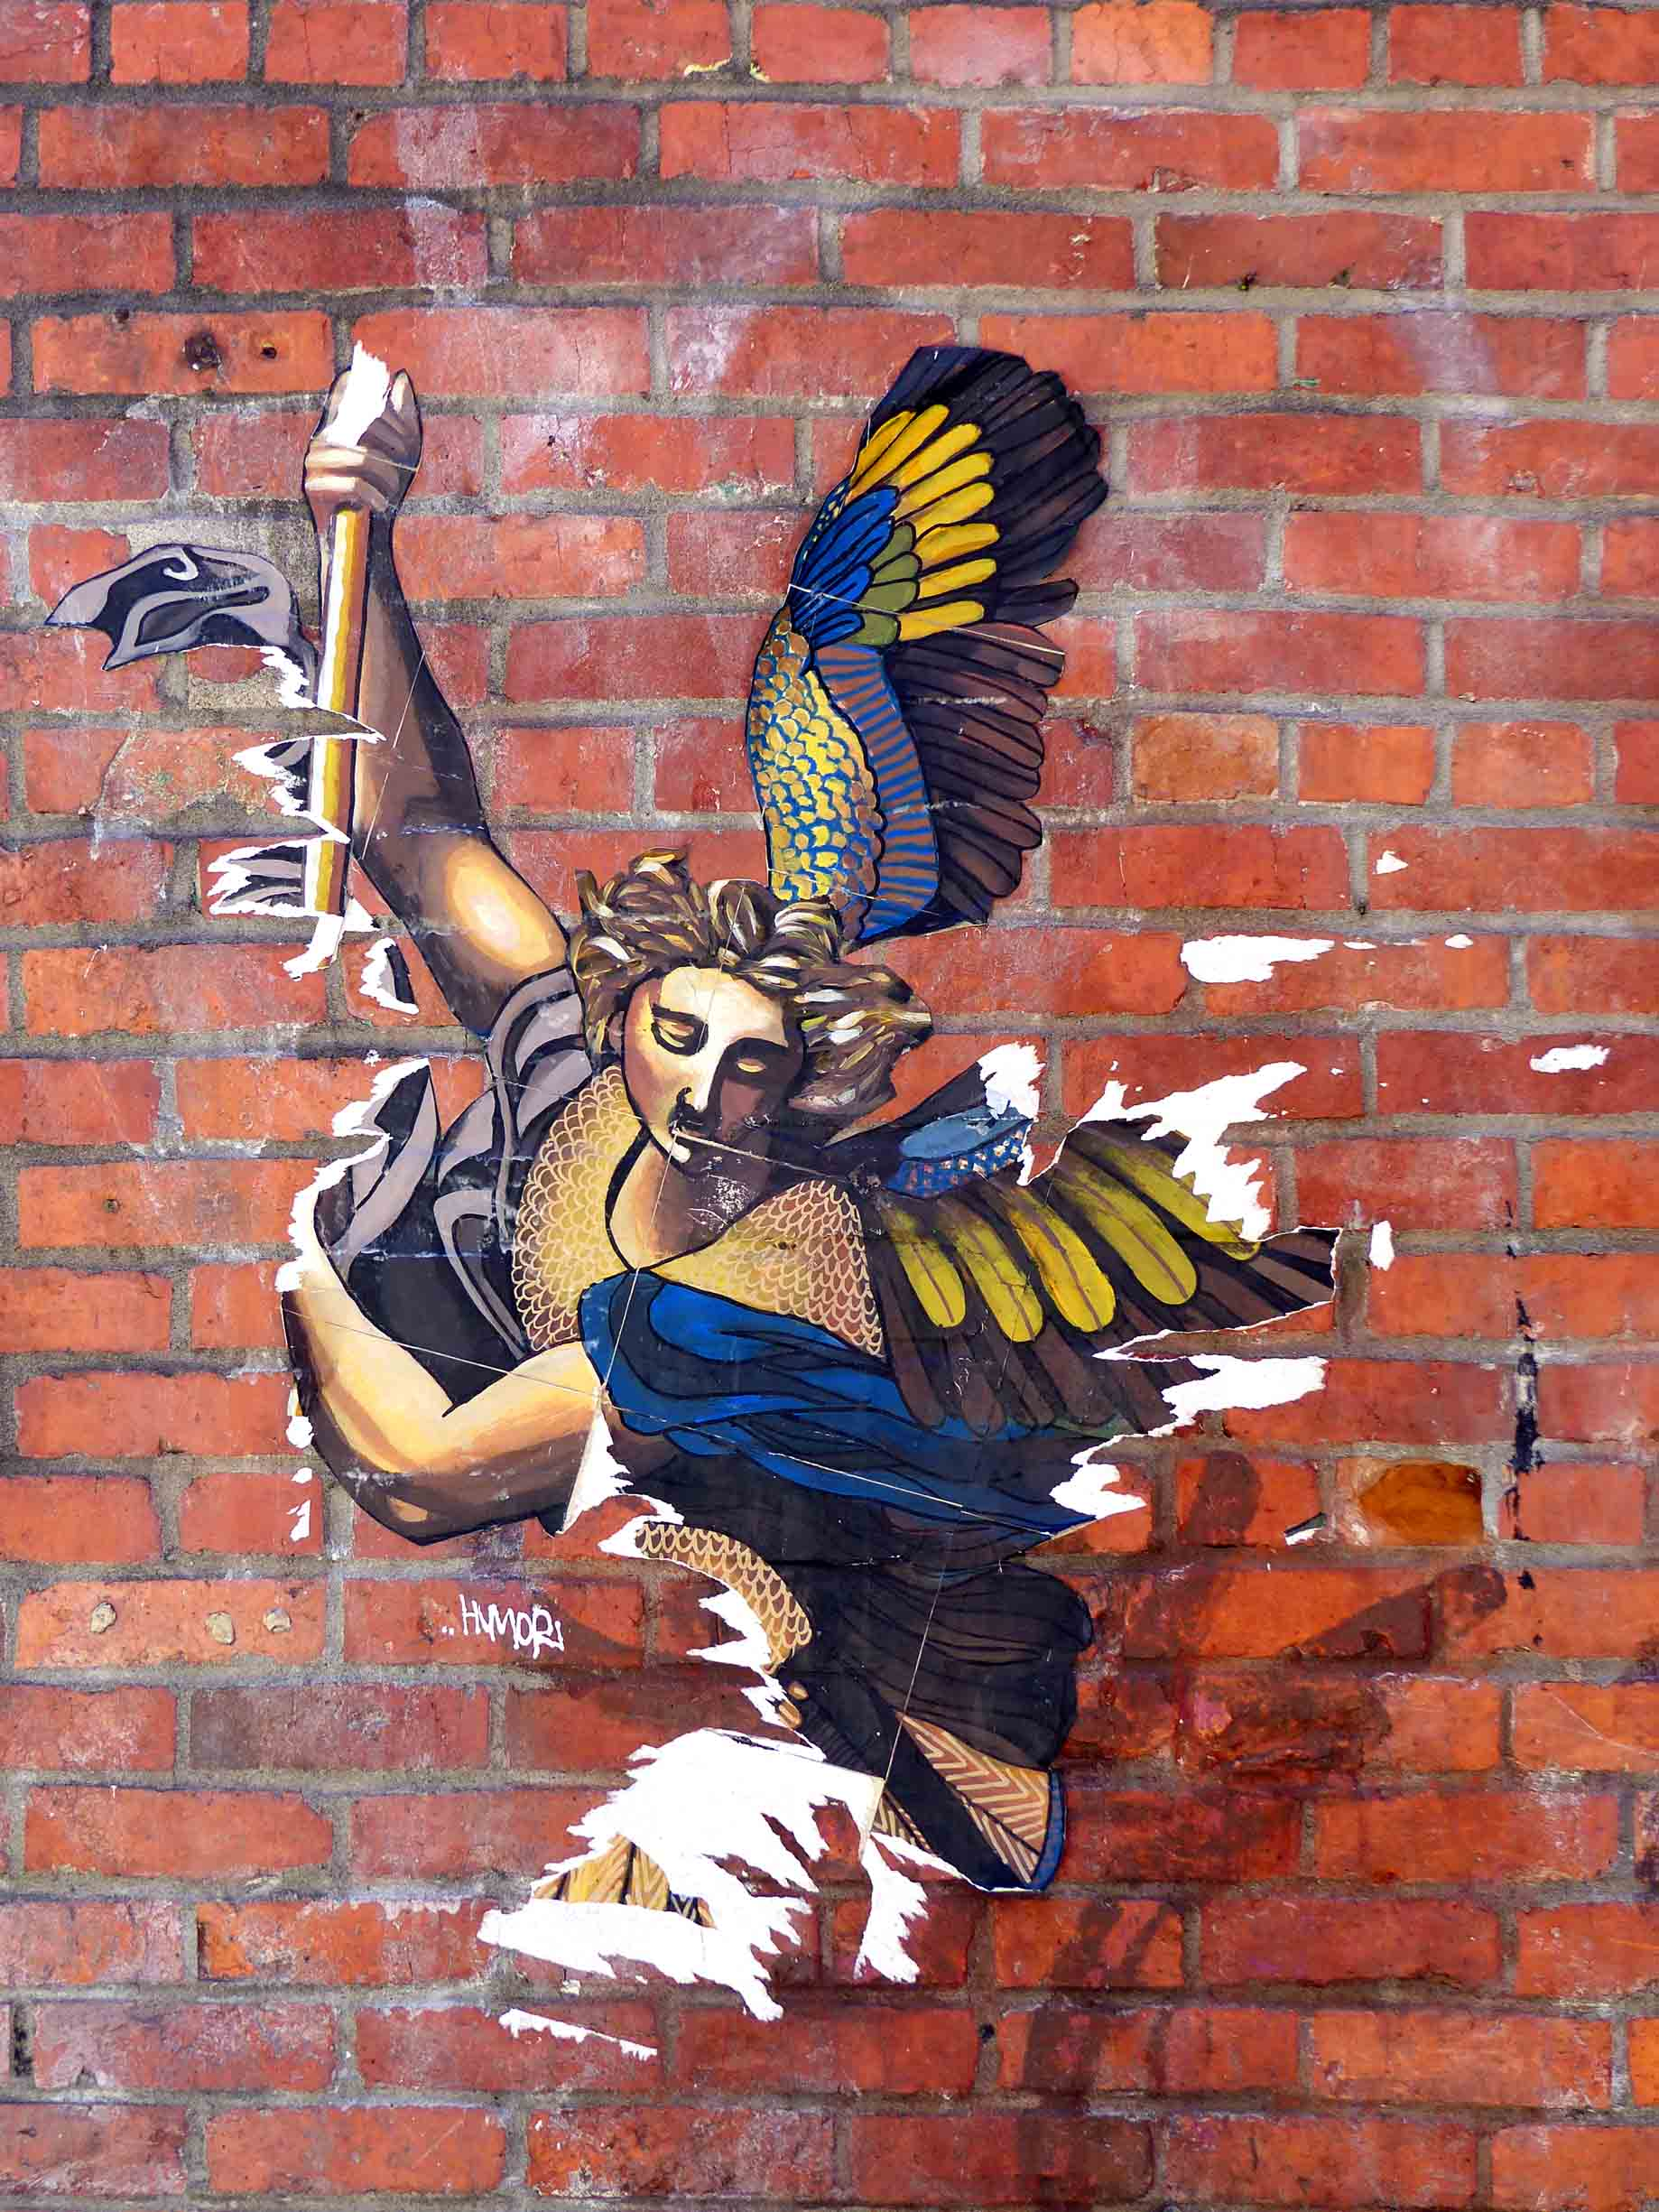 Mural of angel with blue and yellow wings